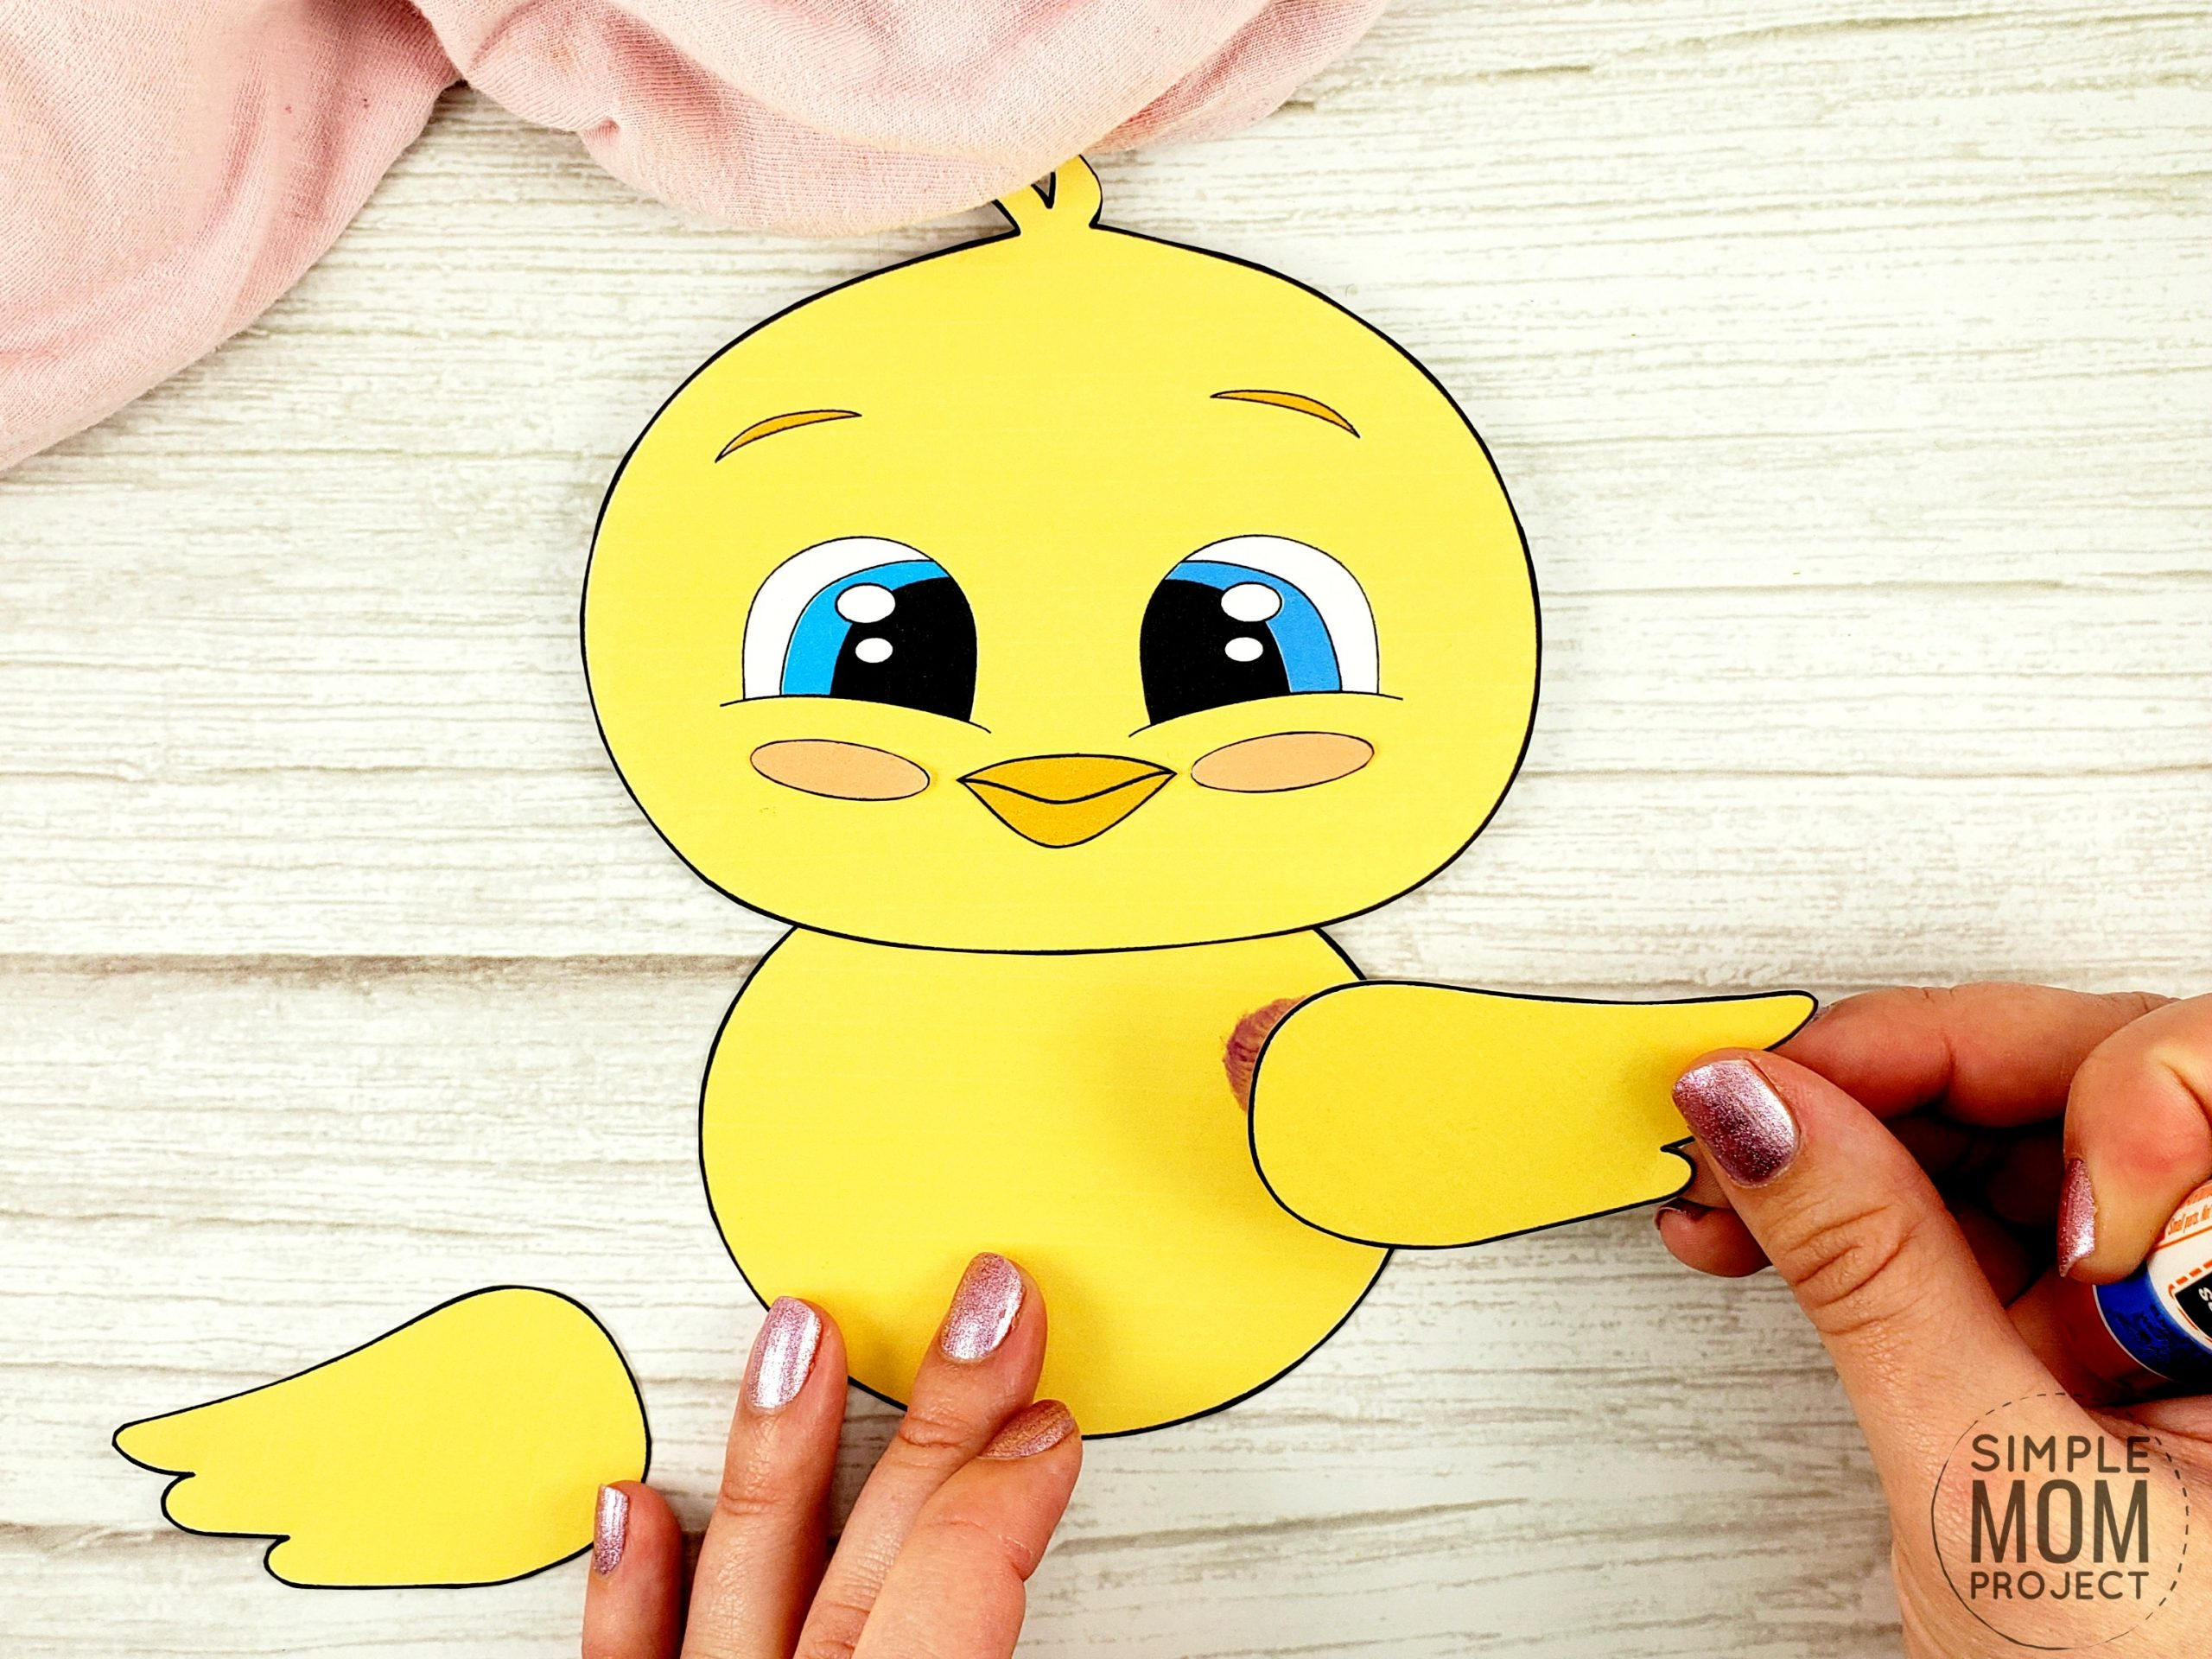 Easy Spring Chick Free Printable Template craft for kids, toddlers and preschoolers